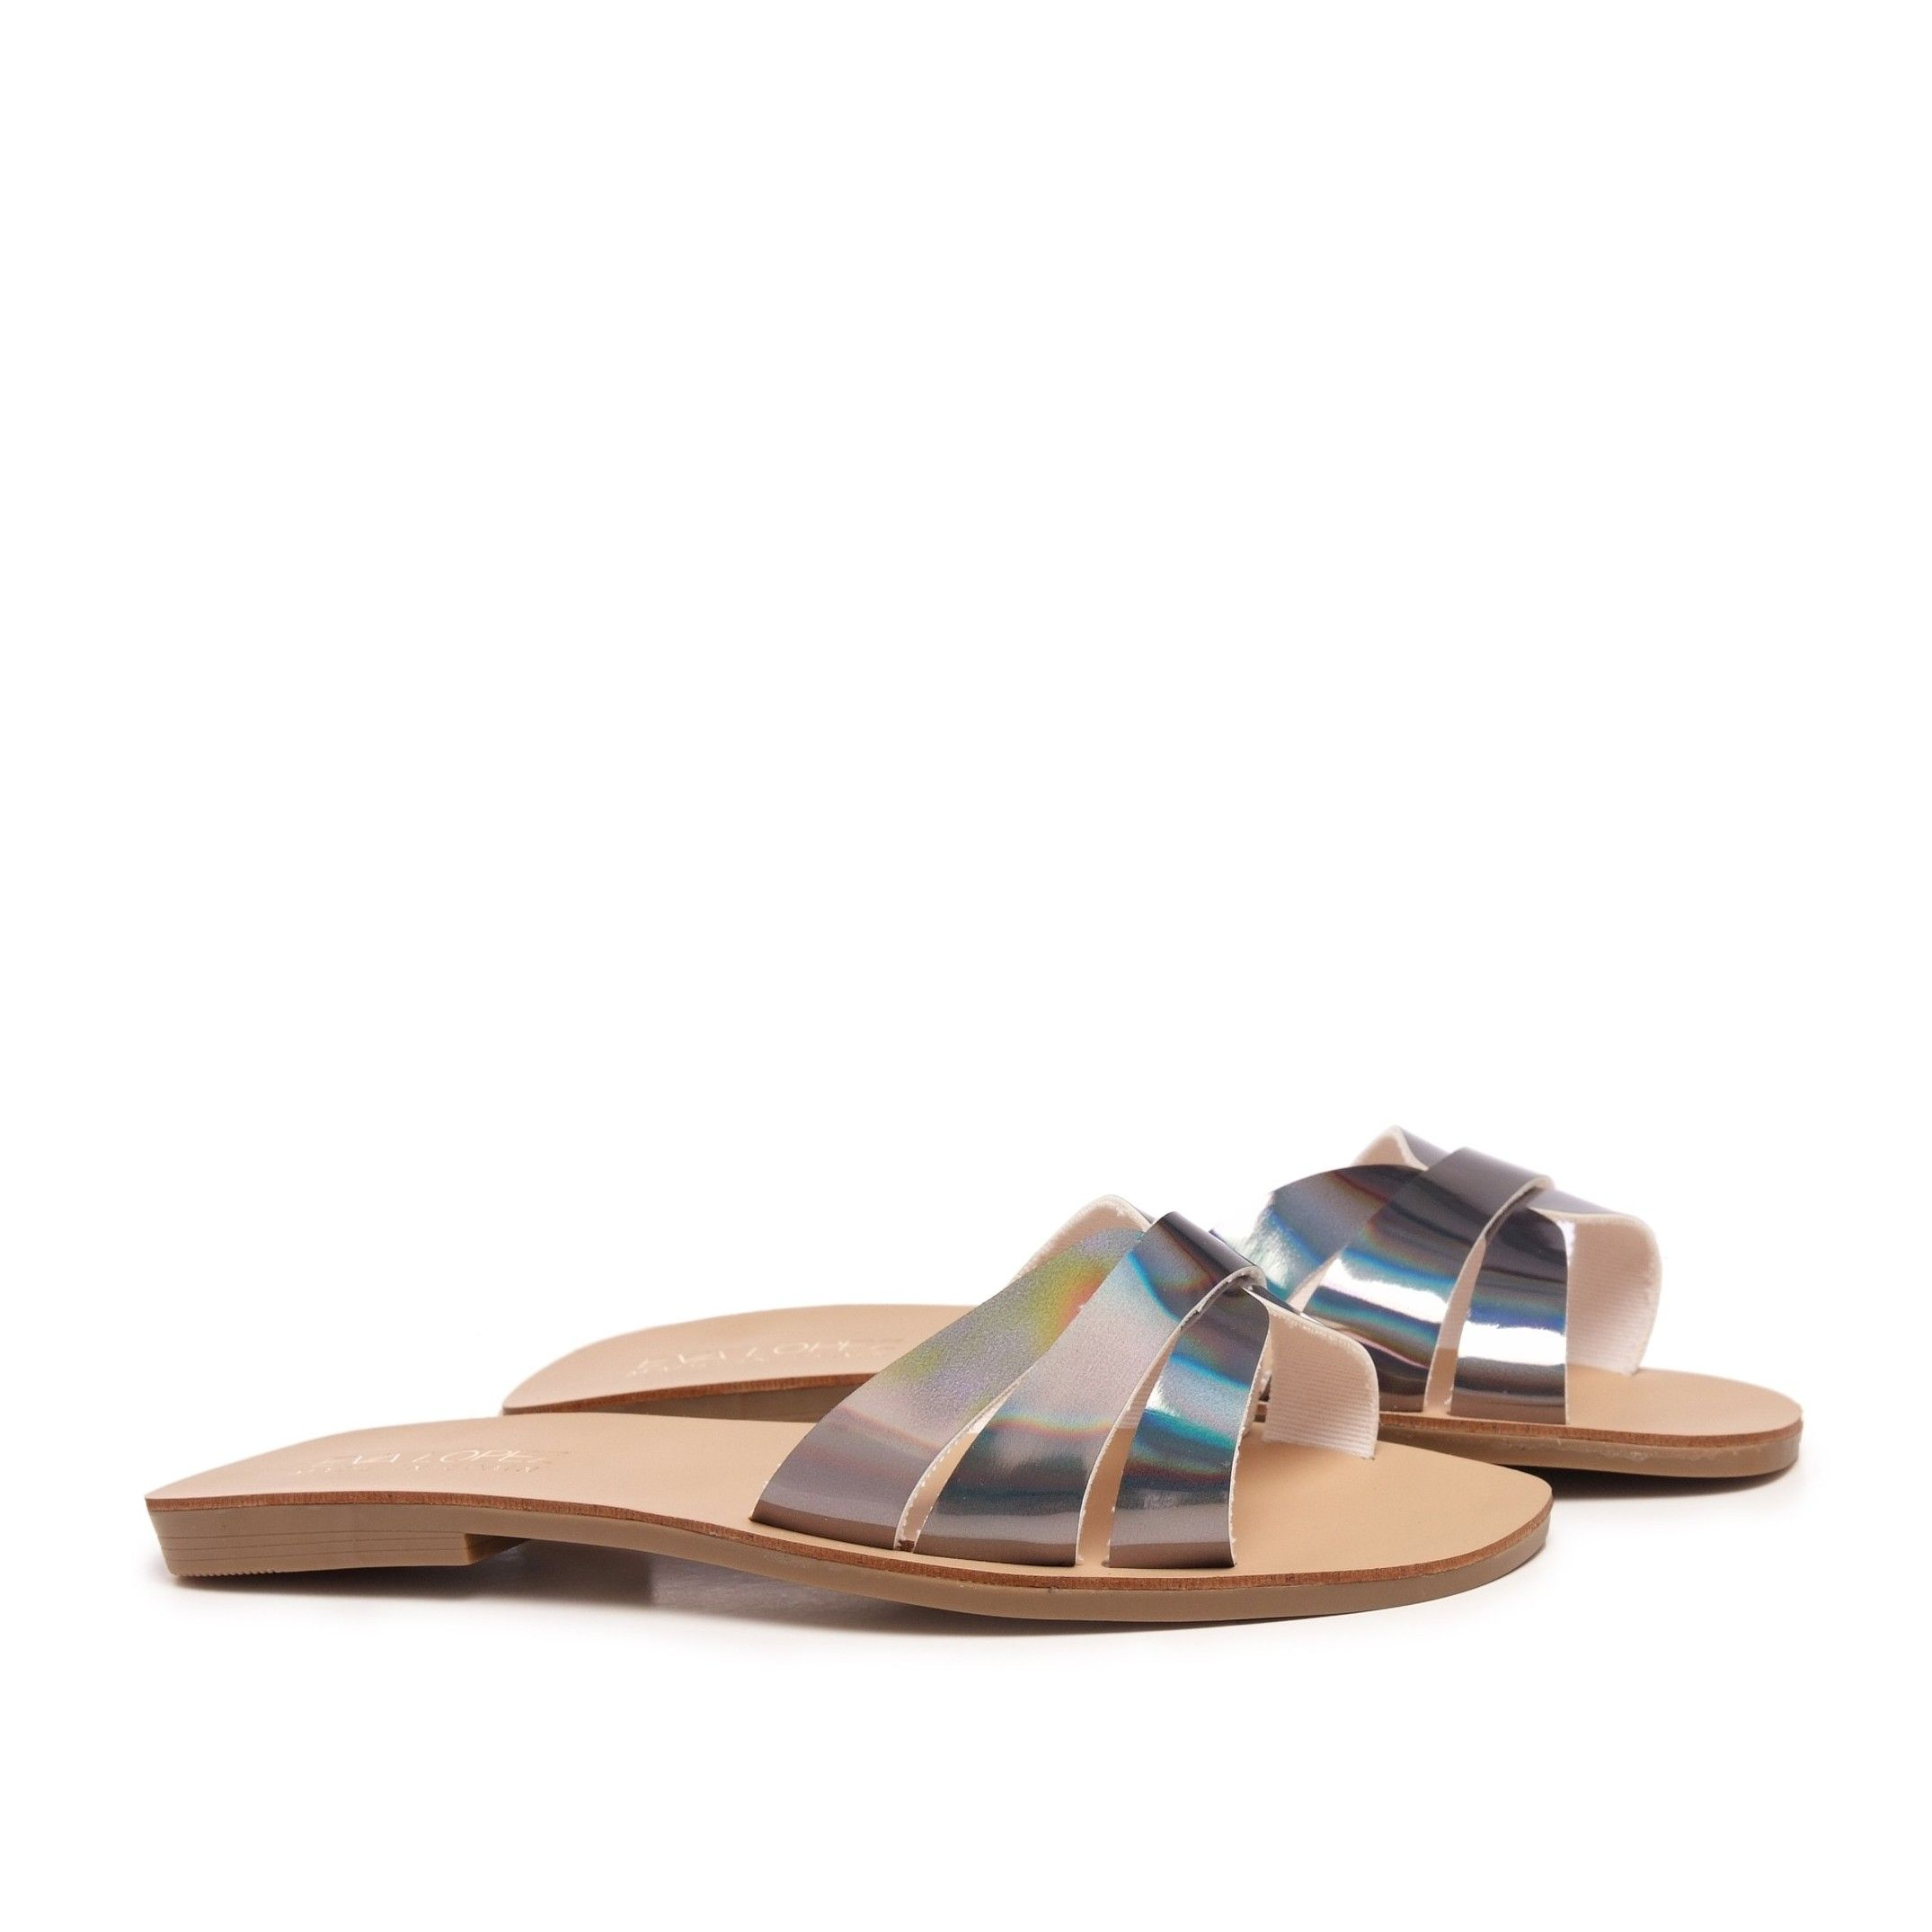 Flat Leather Sandal for Women Eva Lopez